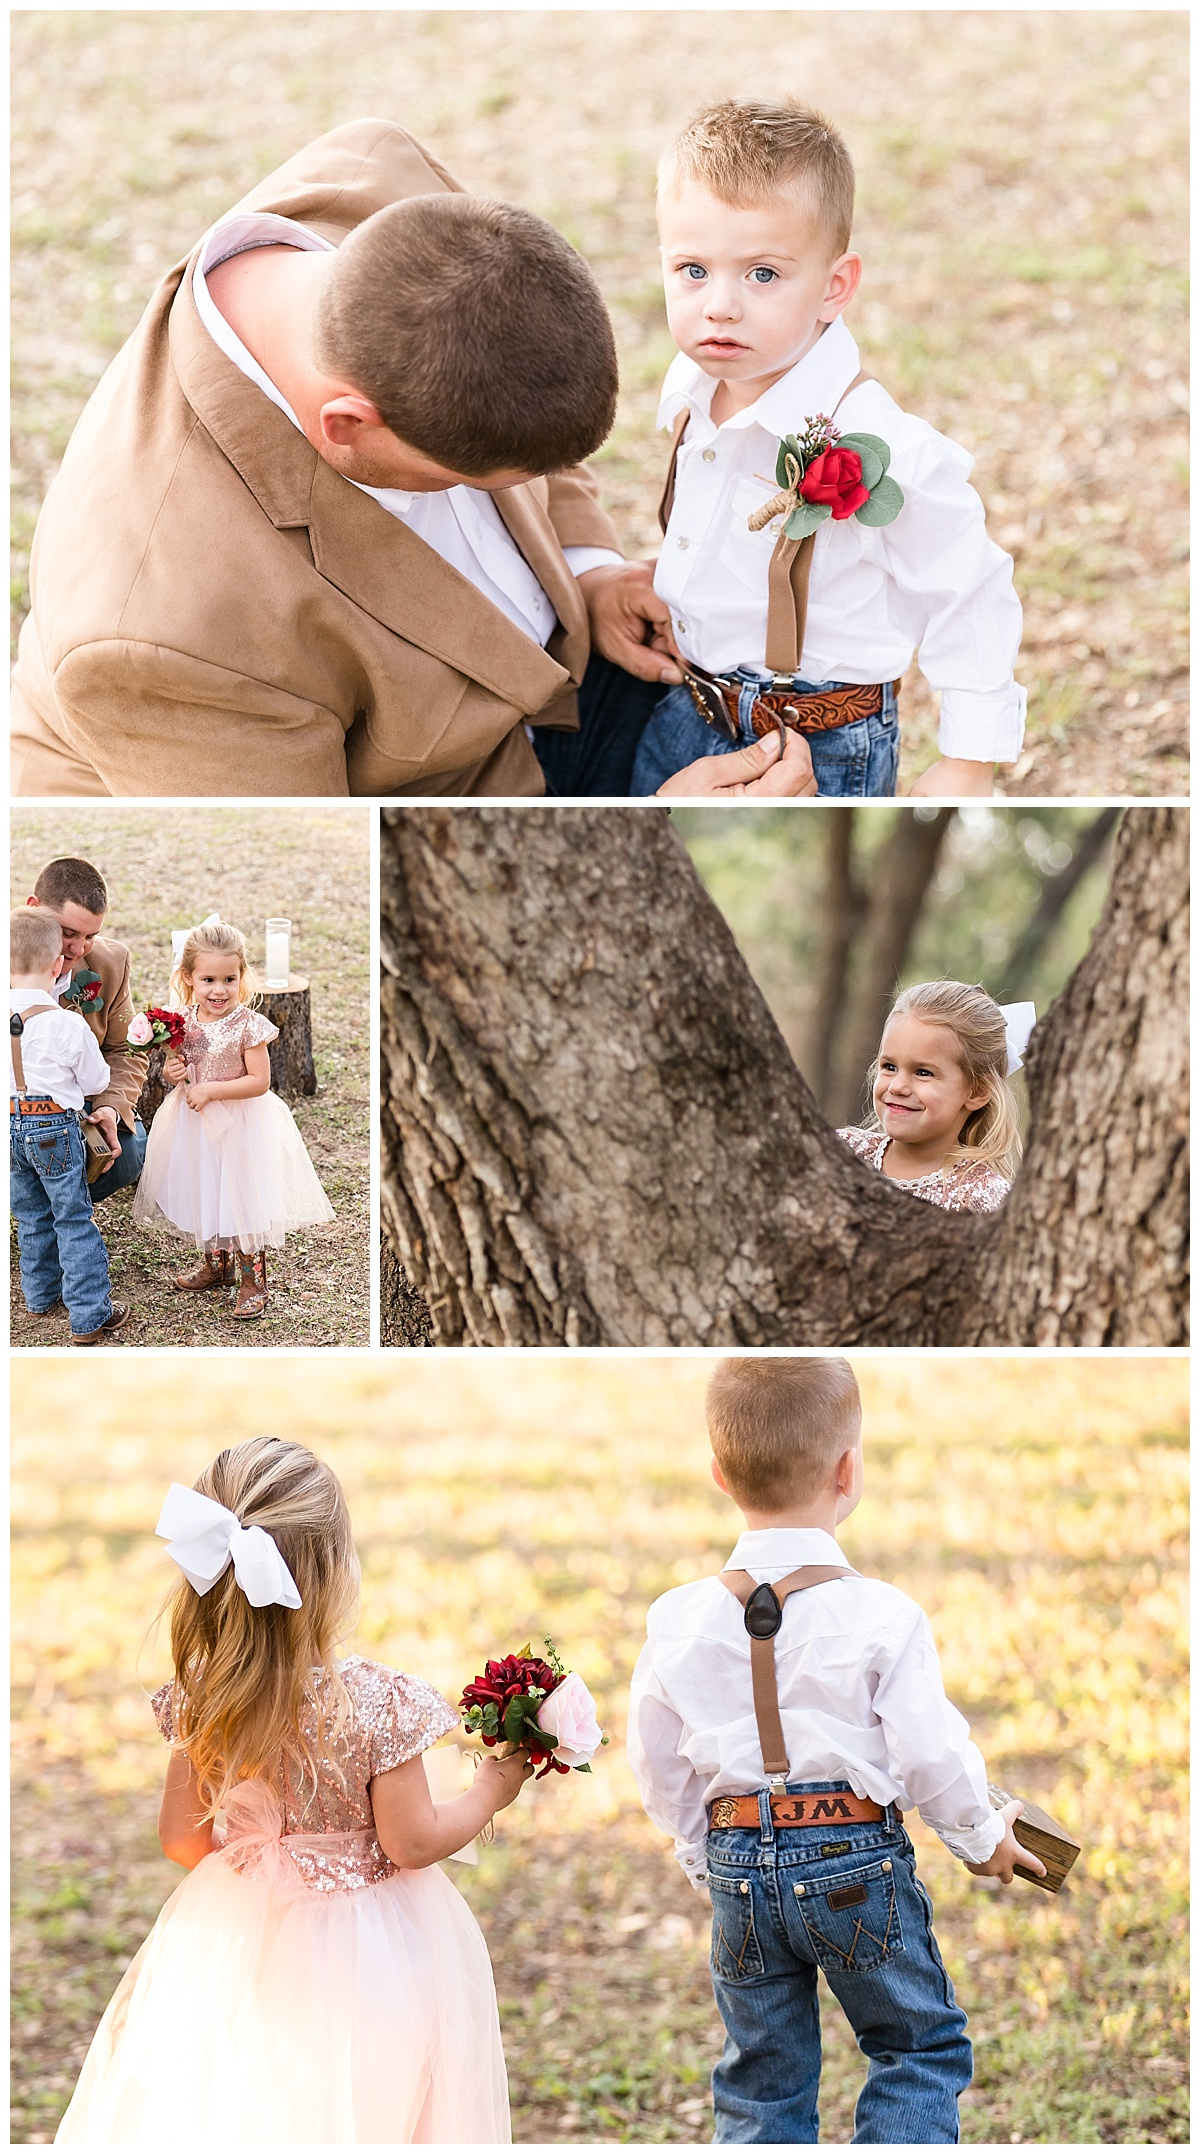 Wedding-Photographer-LaVernia-Texas-Ceremony-Under-the-Trees-Bride-Groom-Fall-McDonald-Carly-Barton-Photography_0025.jpg